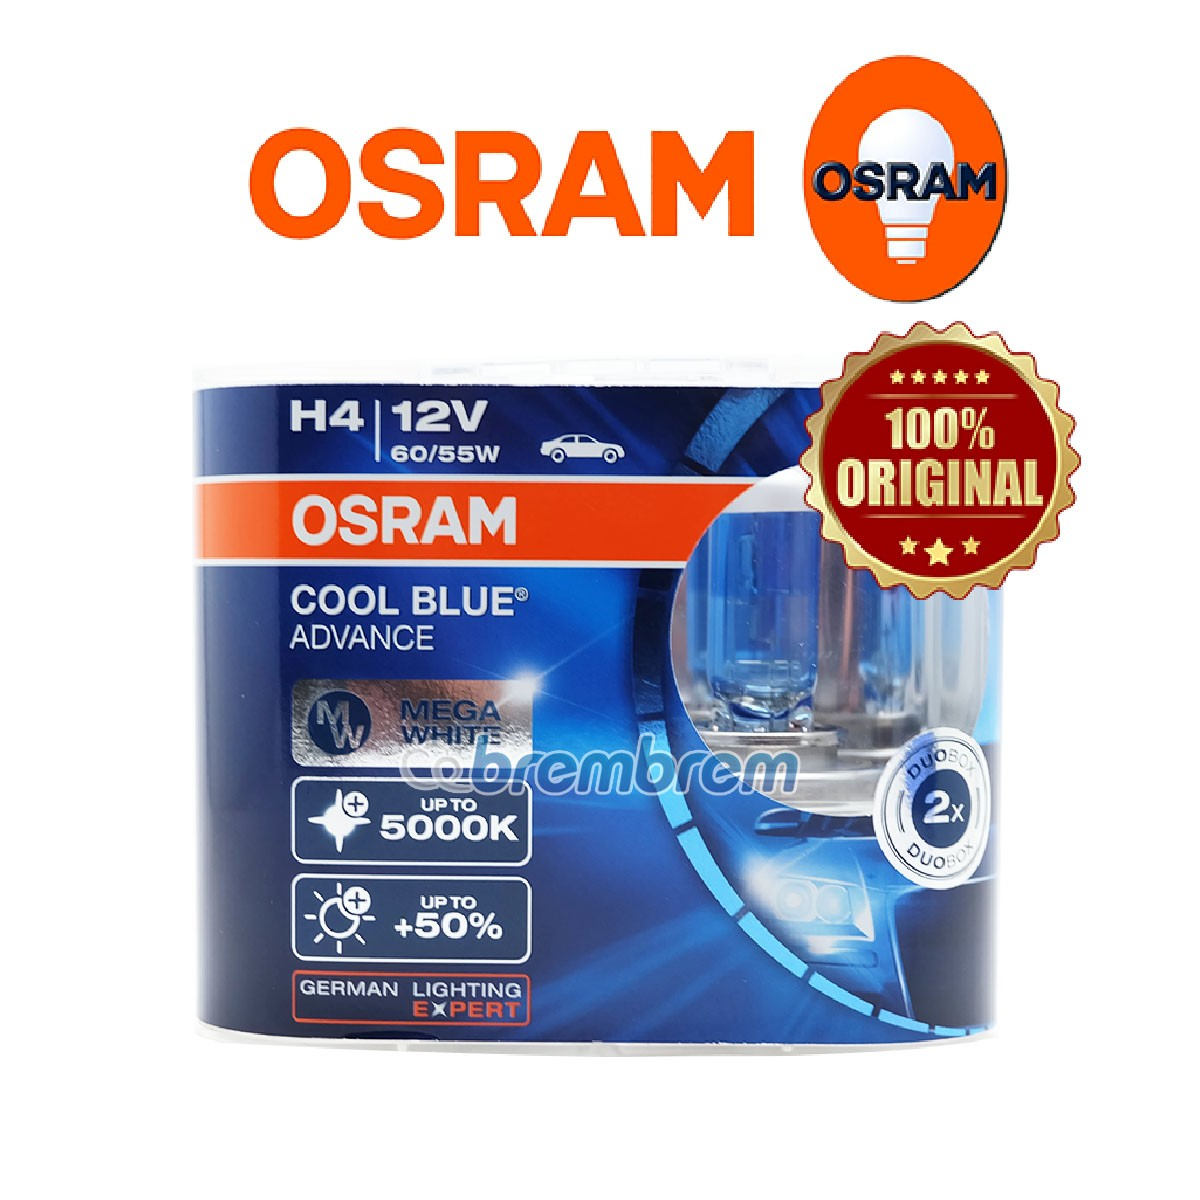 OSRAM COOL BLUE ADVANCE H4 (5000K) - LAMPU HALOGEN